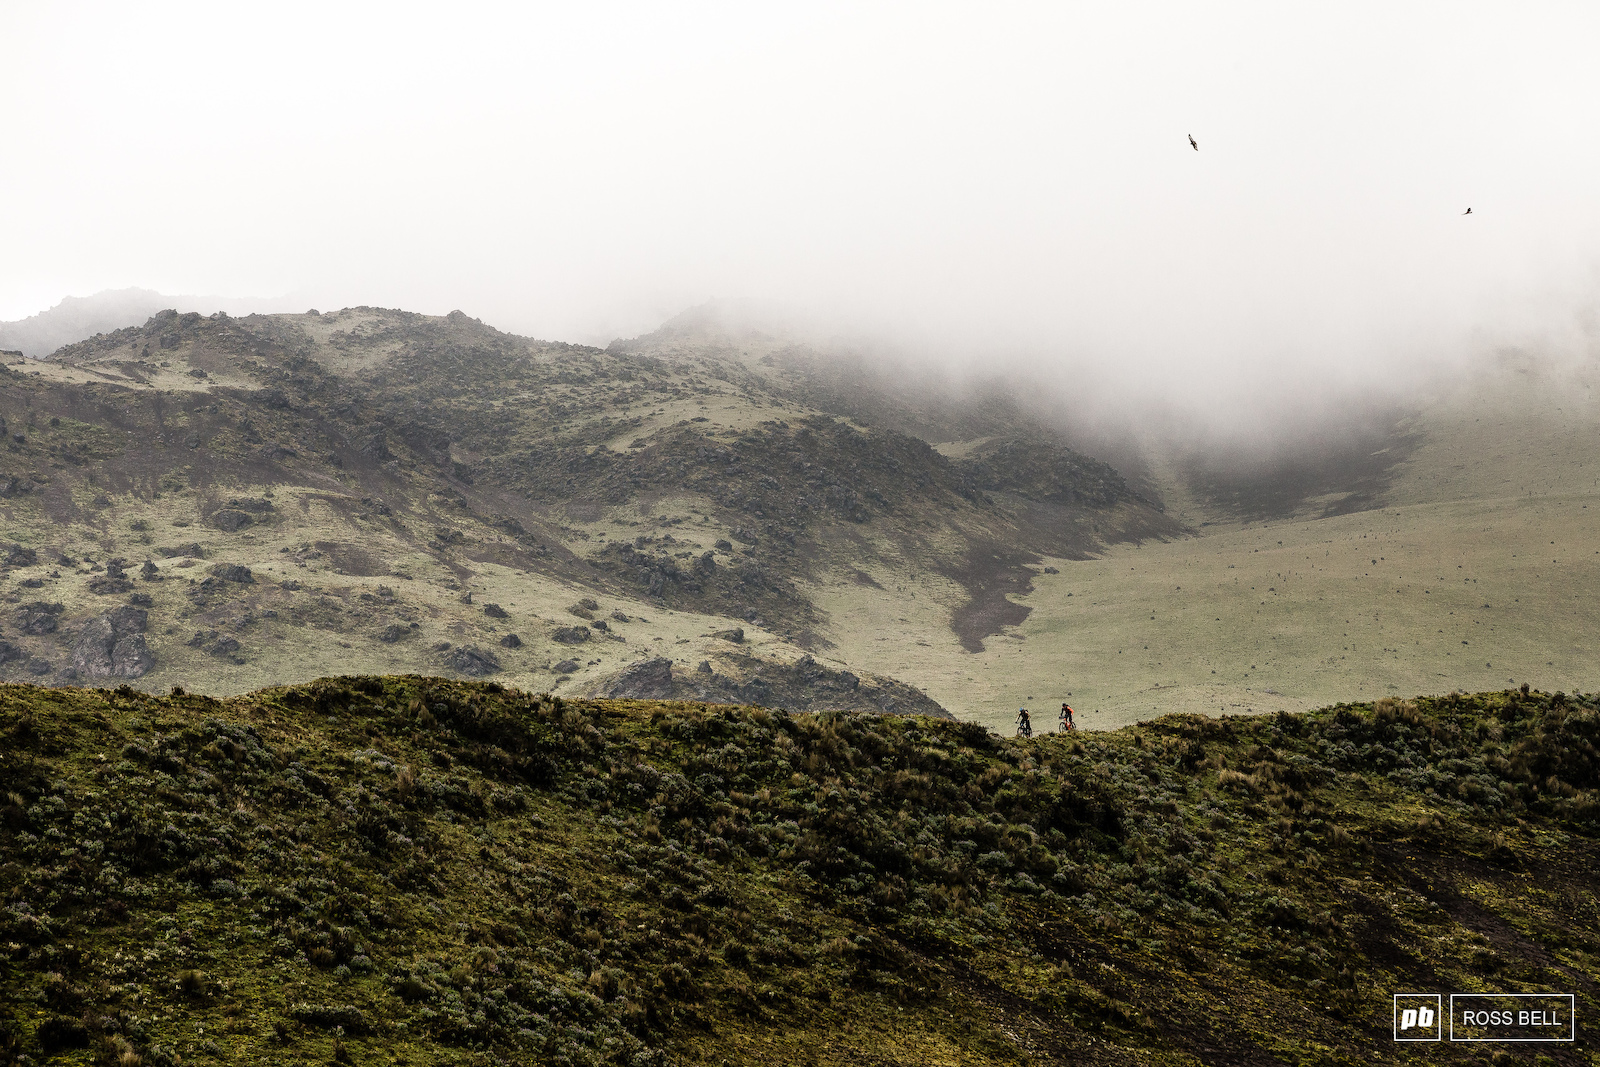 Scotty Laughland chases Thomas Vanderham down Heaven s Ridge in the Cotopaxi National Park in Ecuador.